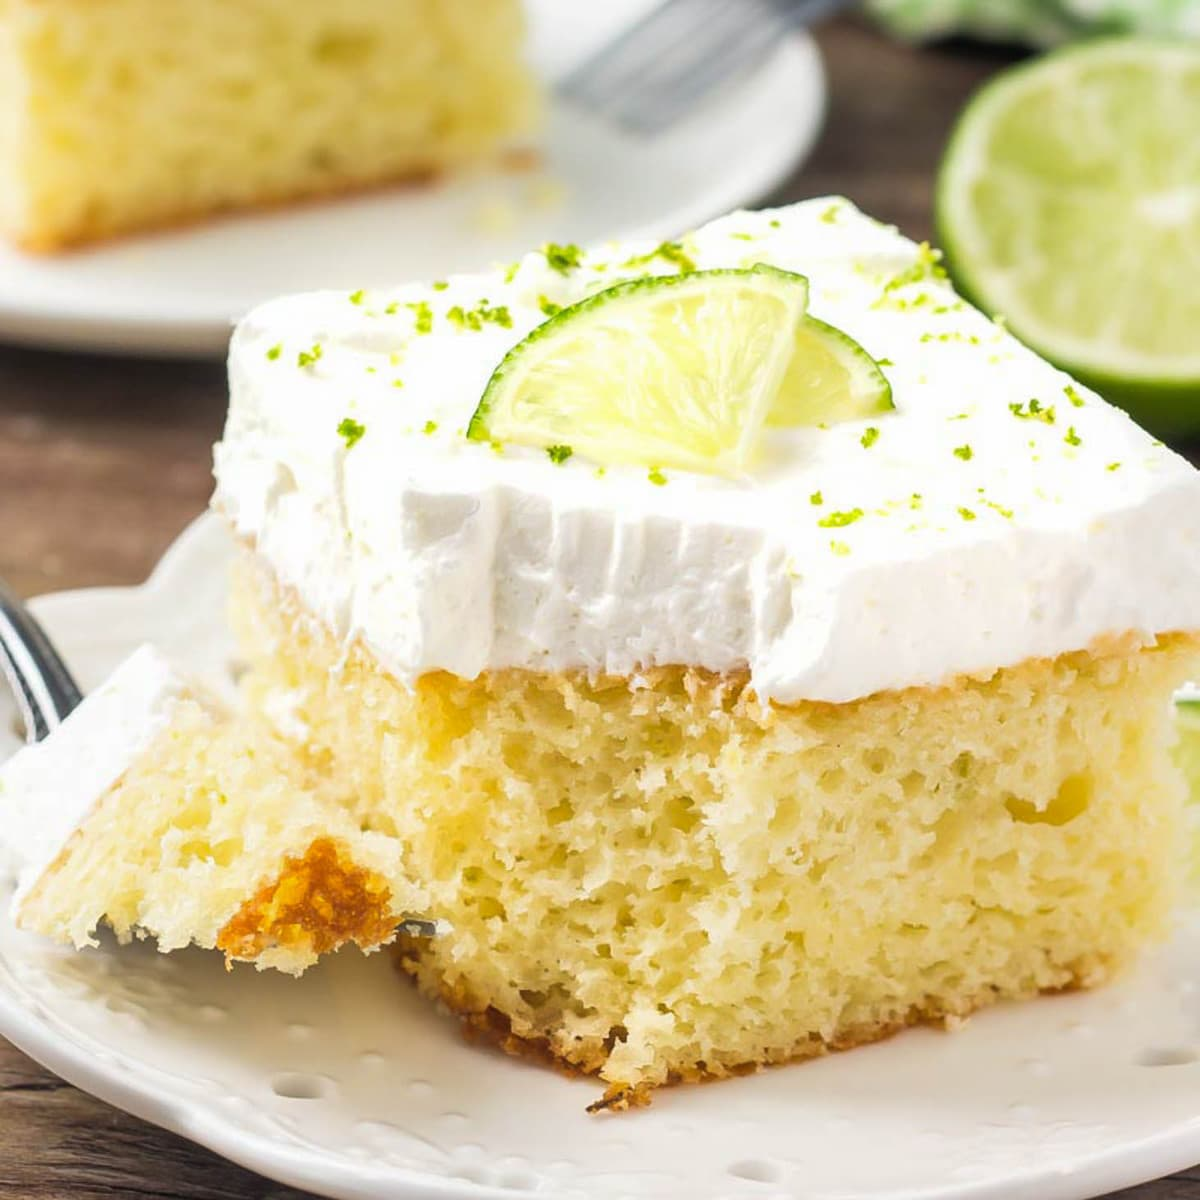 Key Lime Cake with a bite missing